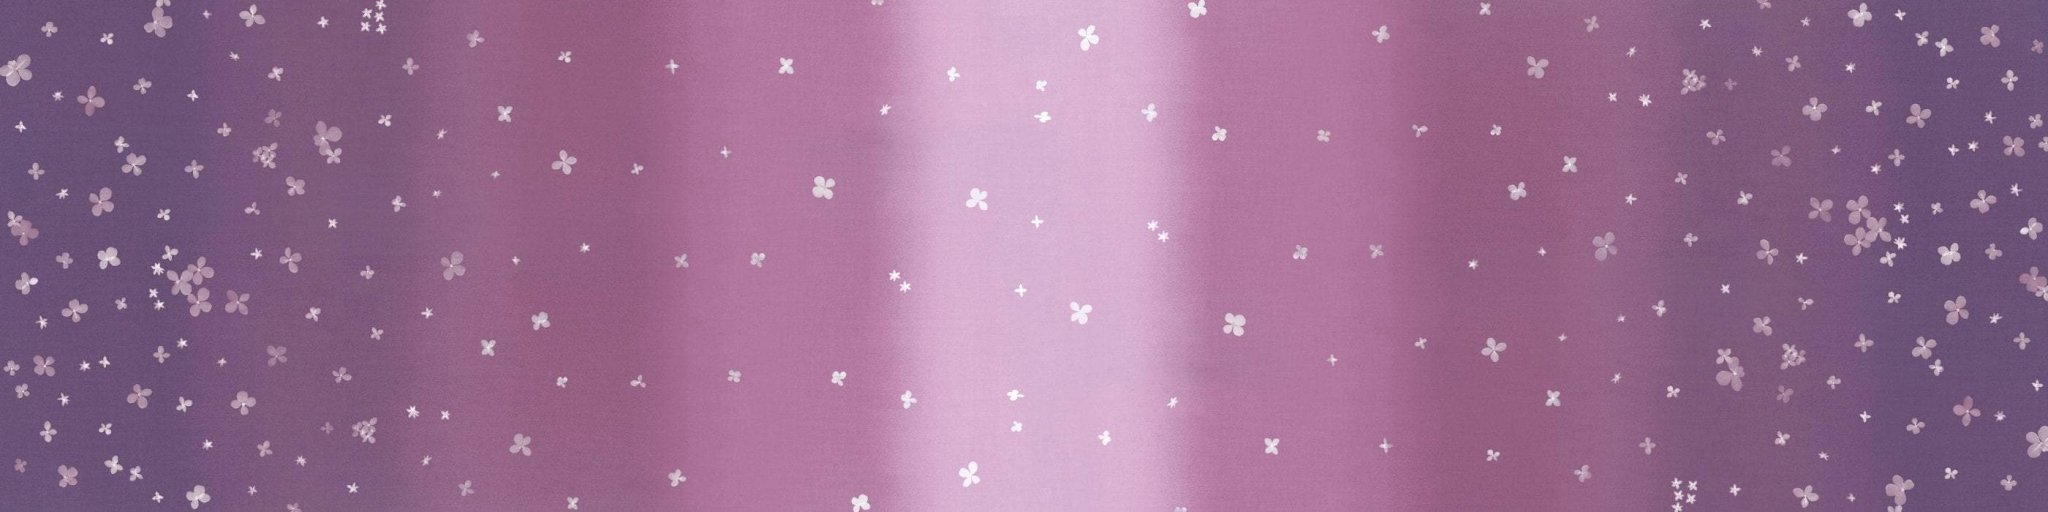 Baby Quilt Pillow Banner Pattern Fabric Kit Moda V and Co Indigo Vanessa Christenson 10800 225 Ombre Baby Dots